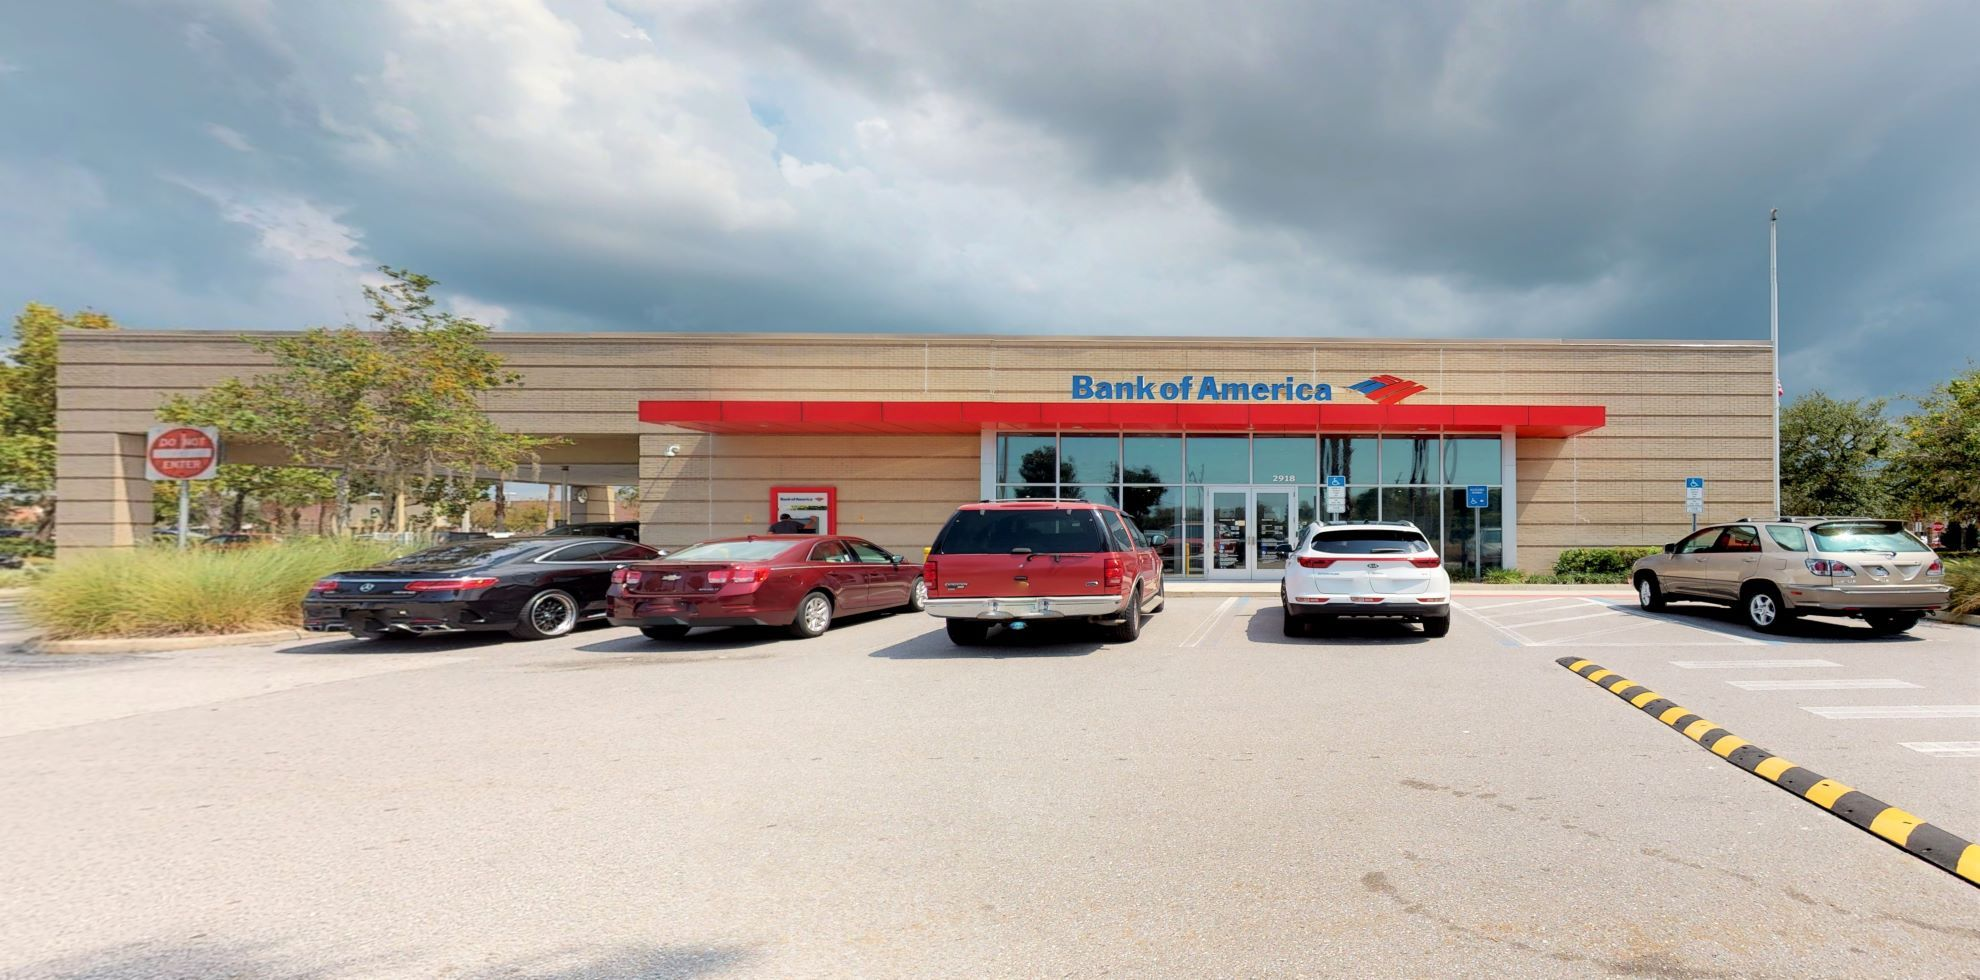 Bank of America financial center with drive-thru ATM and teller | 2918 Little Rd, Trinity, FL 34655